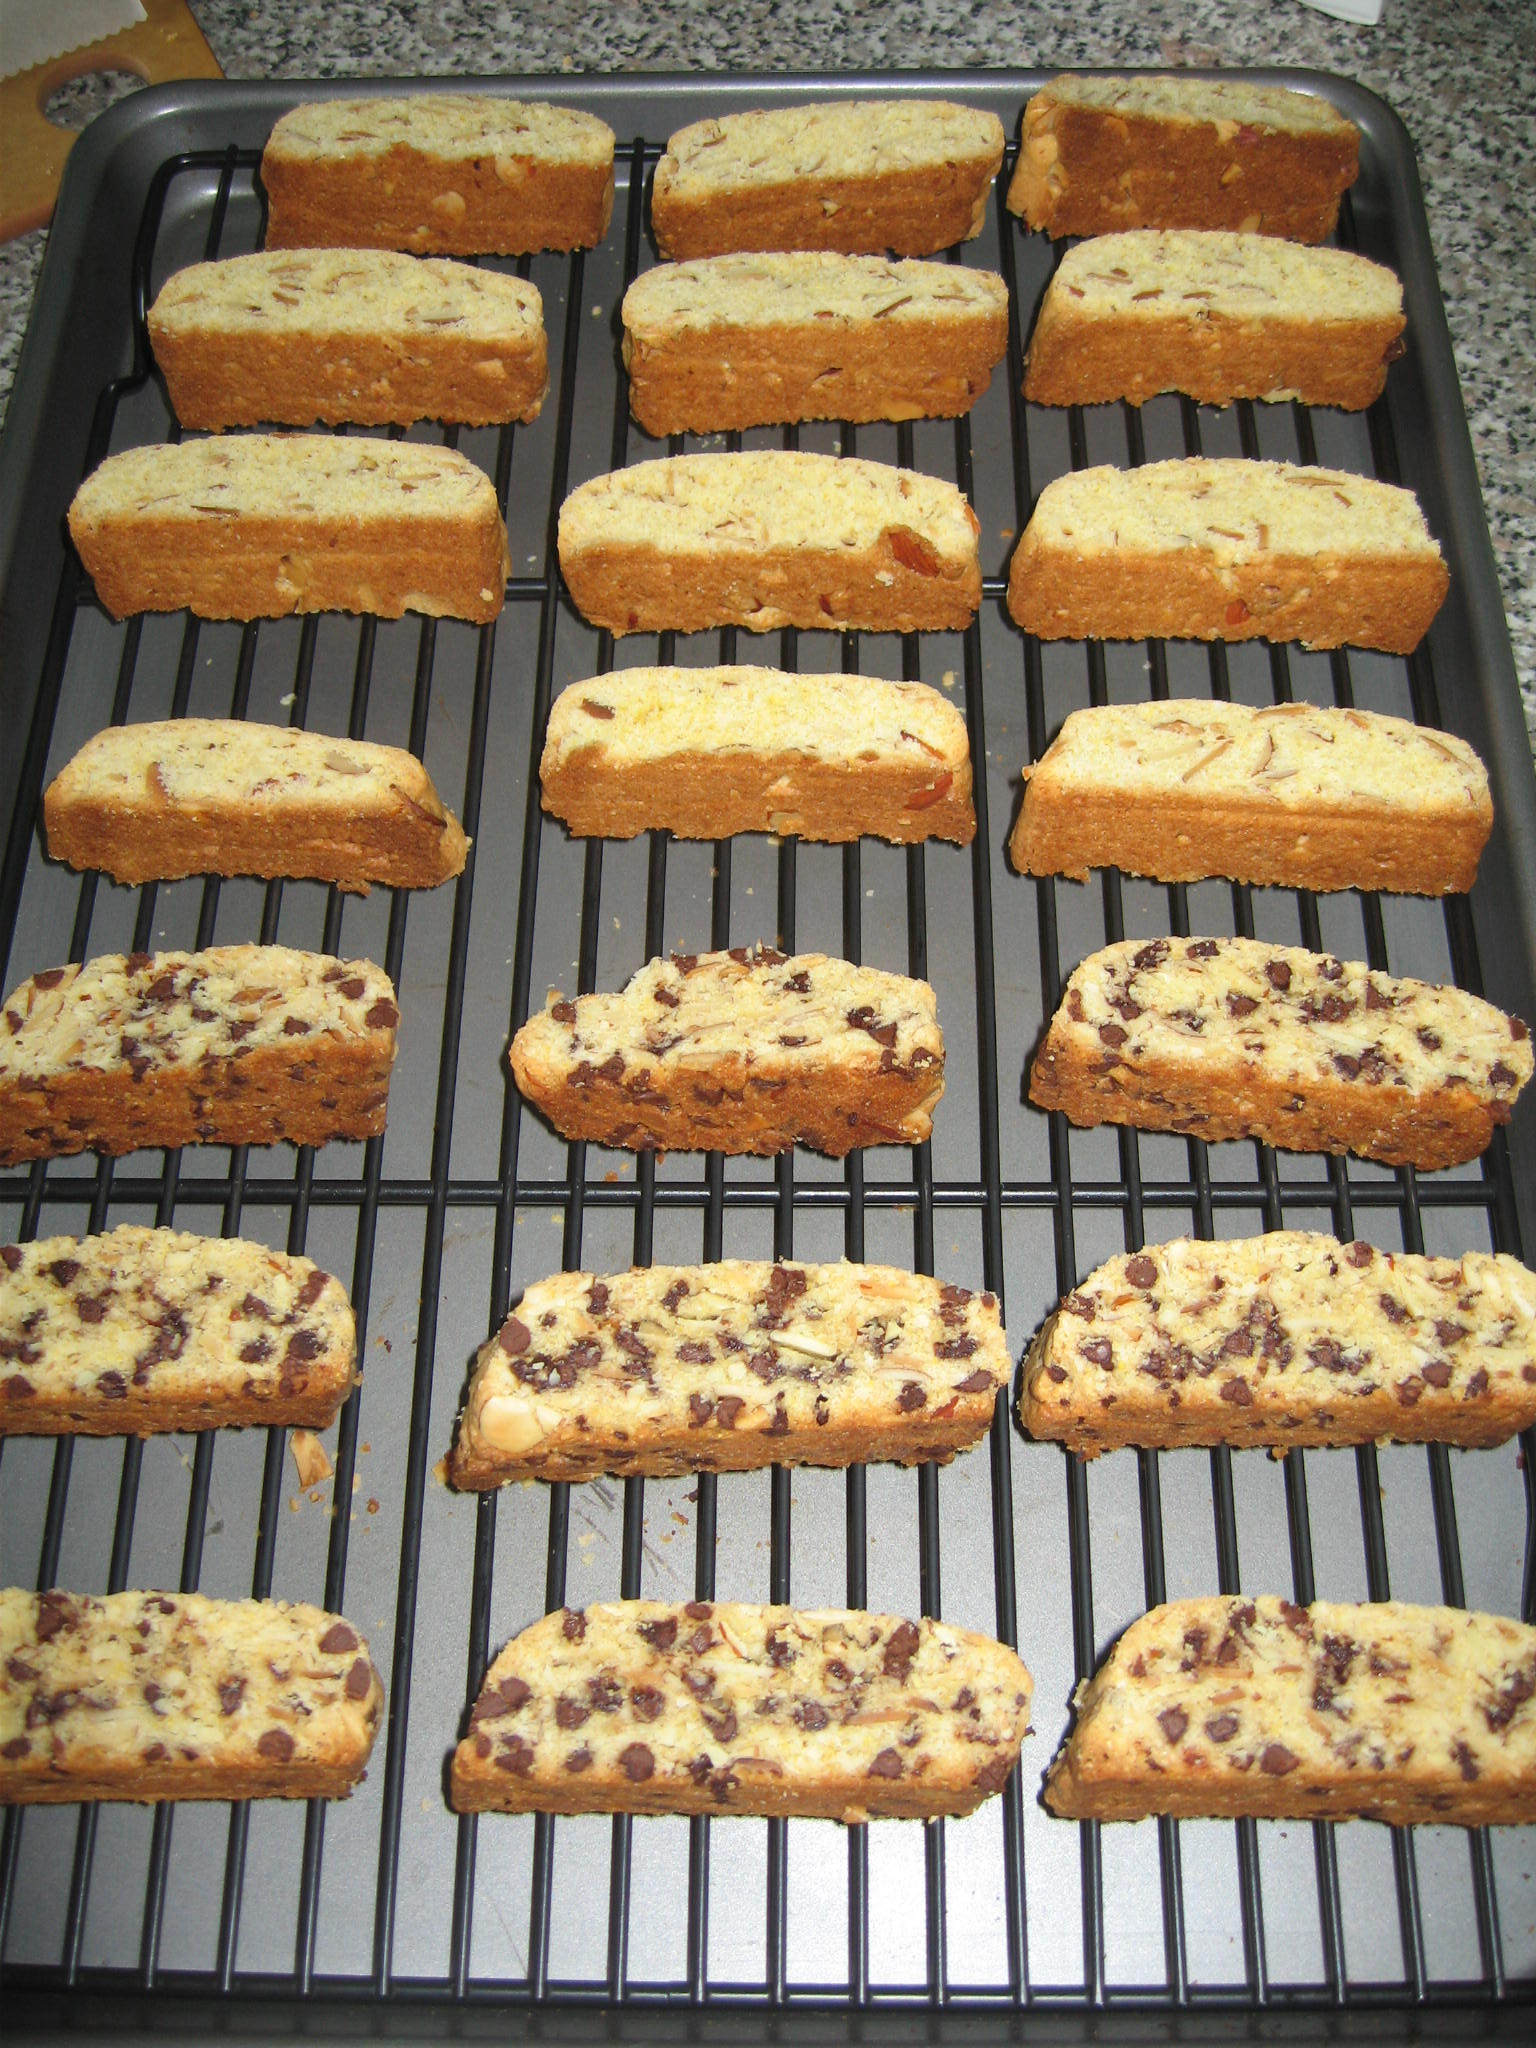 Biscotti2 slices